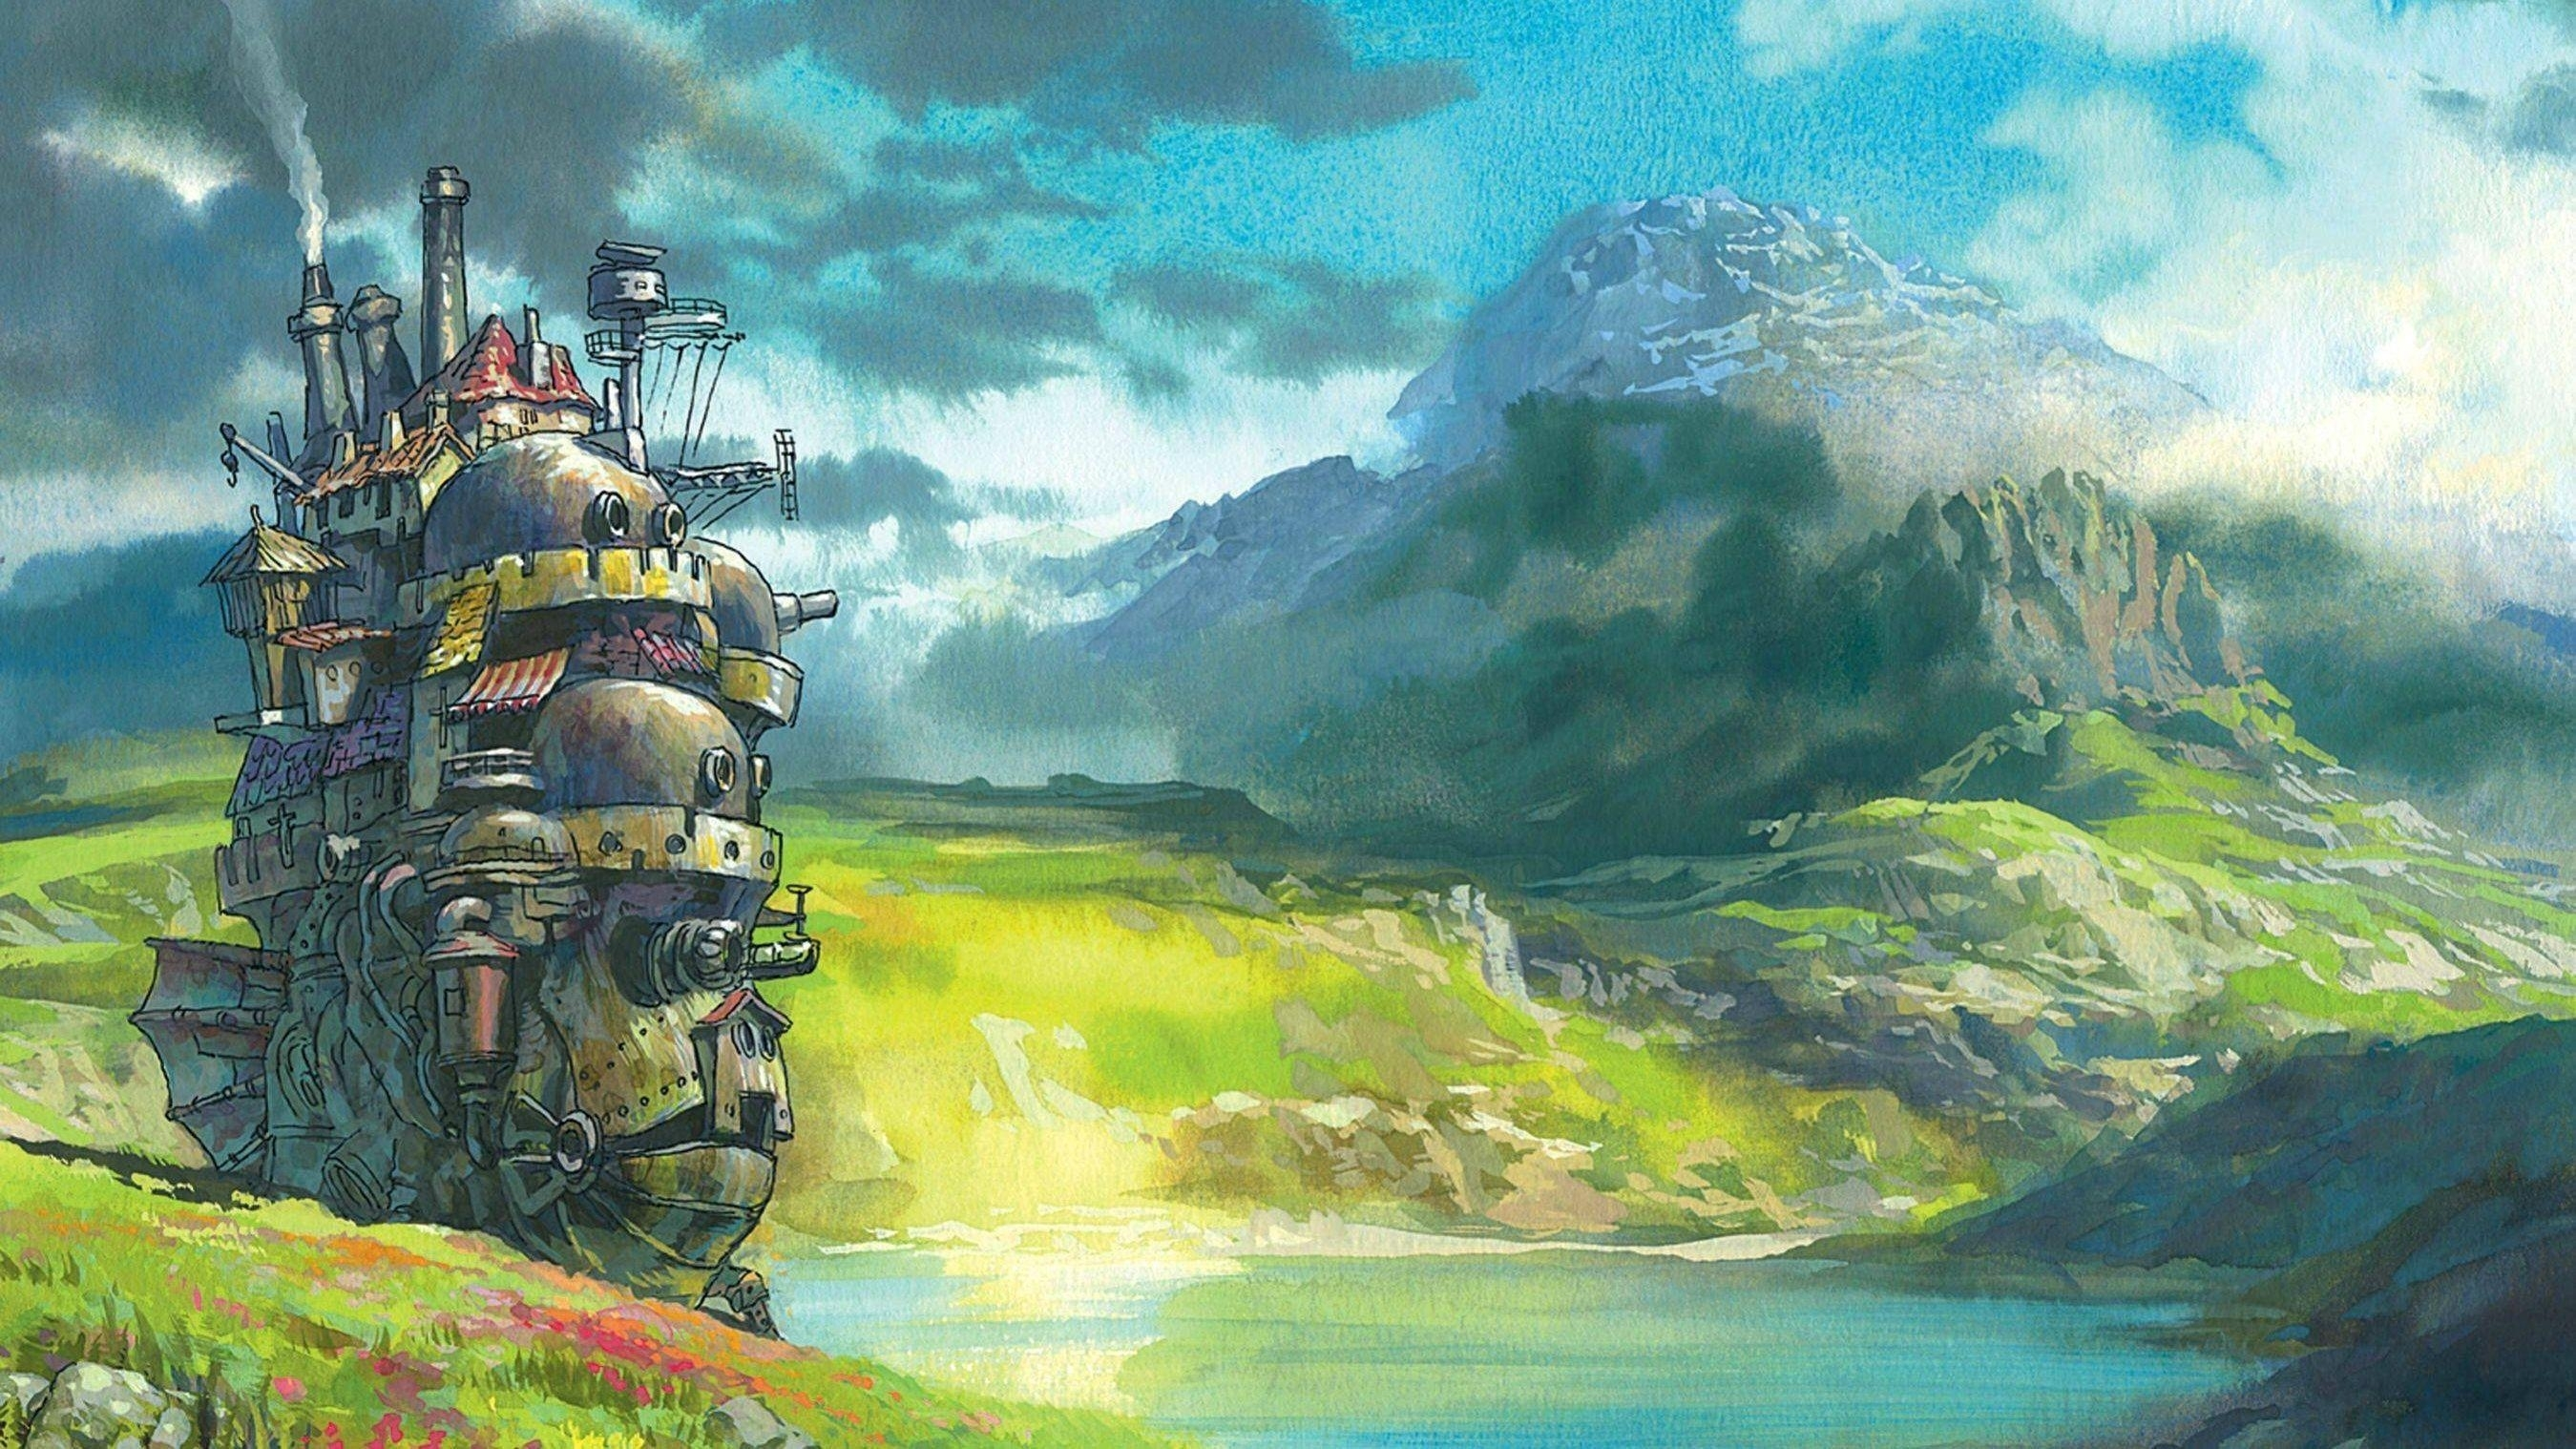 howl's moving castle wallpapers - wallpaper cave